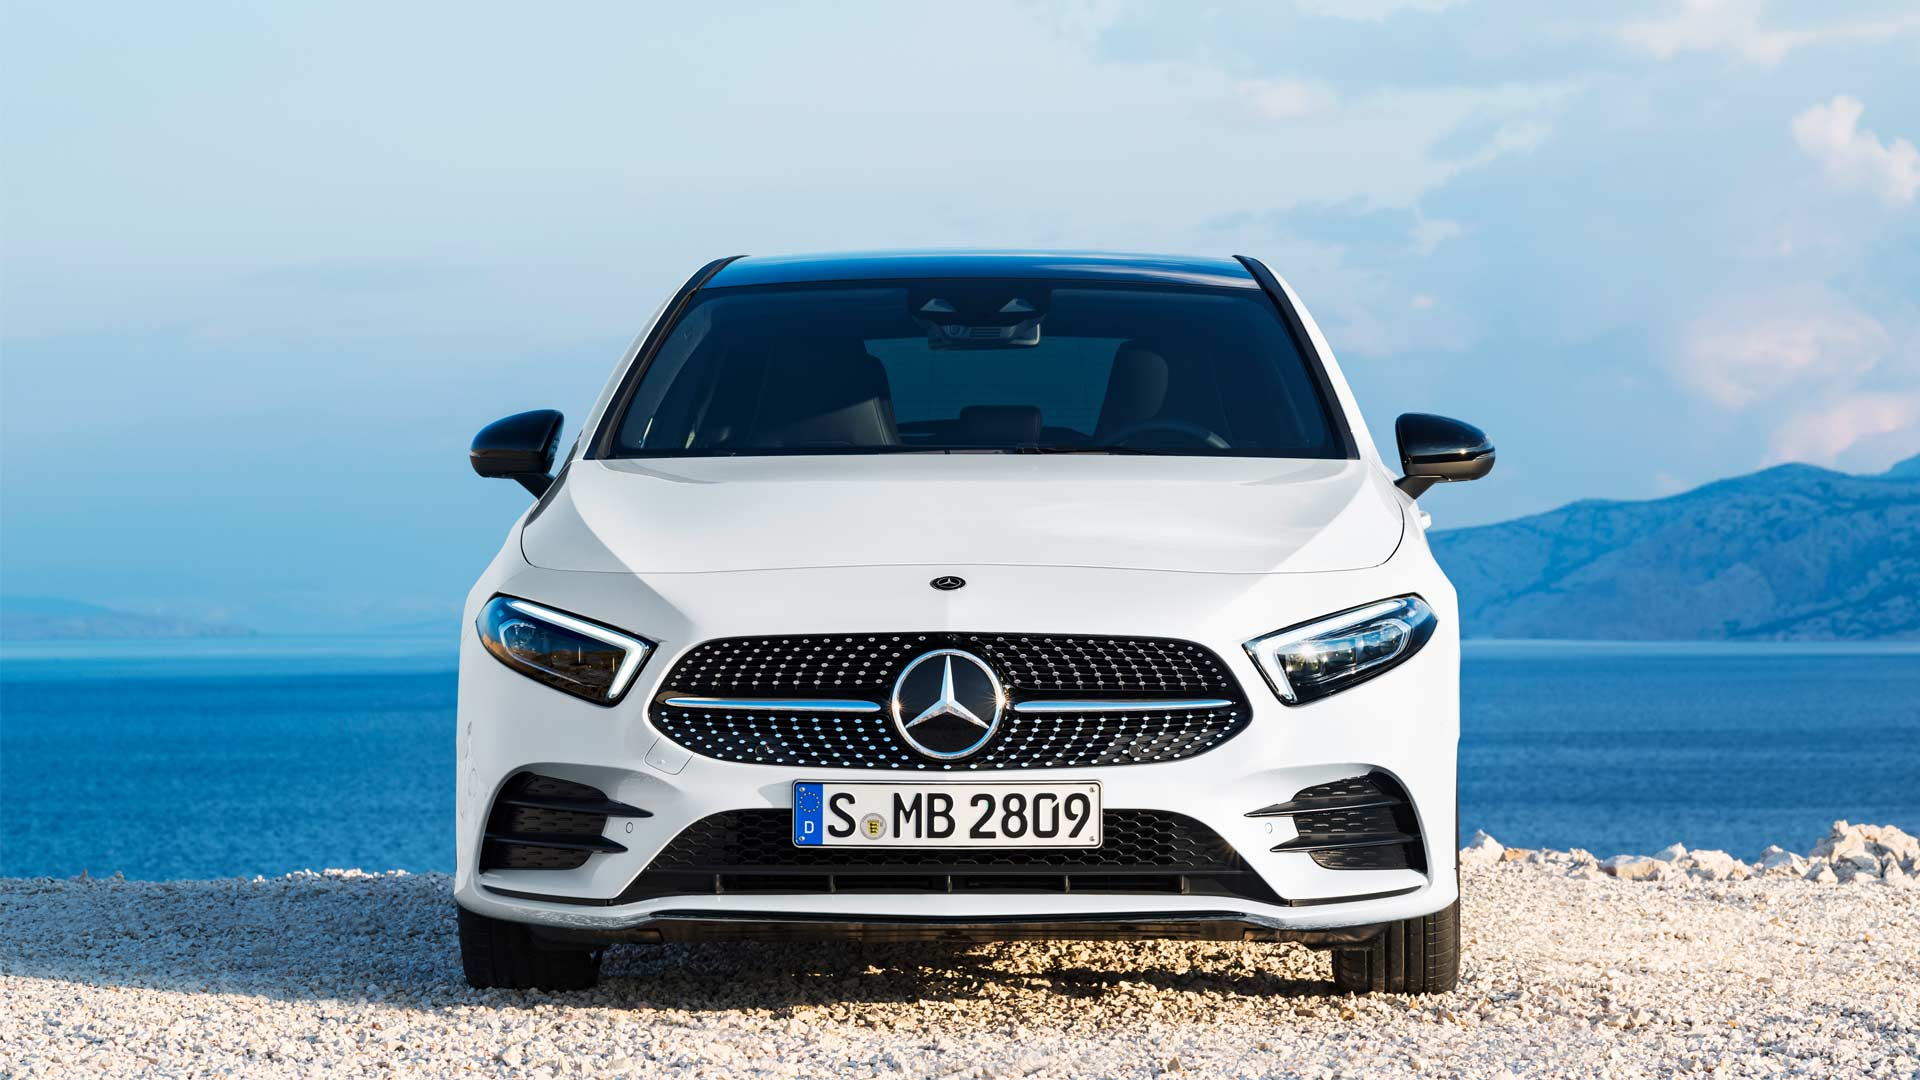 2018 4th generation Mercedes-Benz A-Class_3